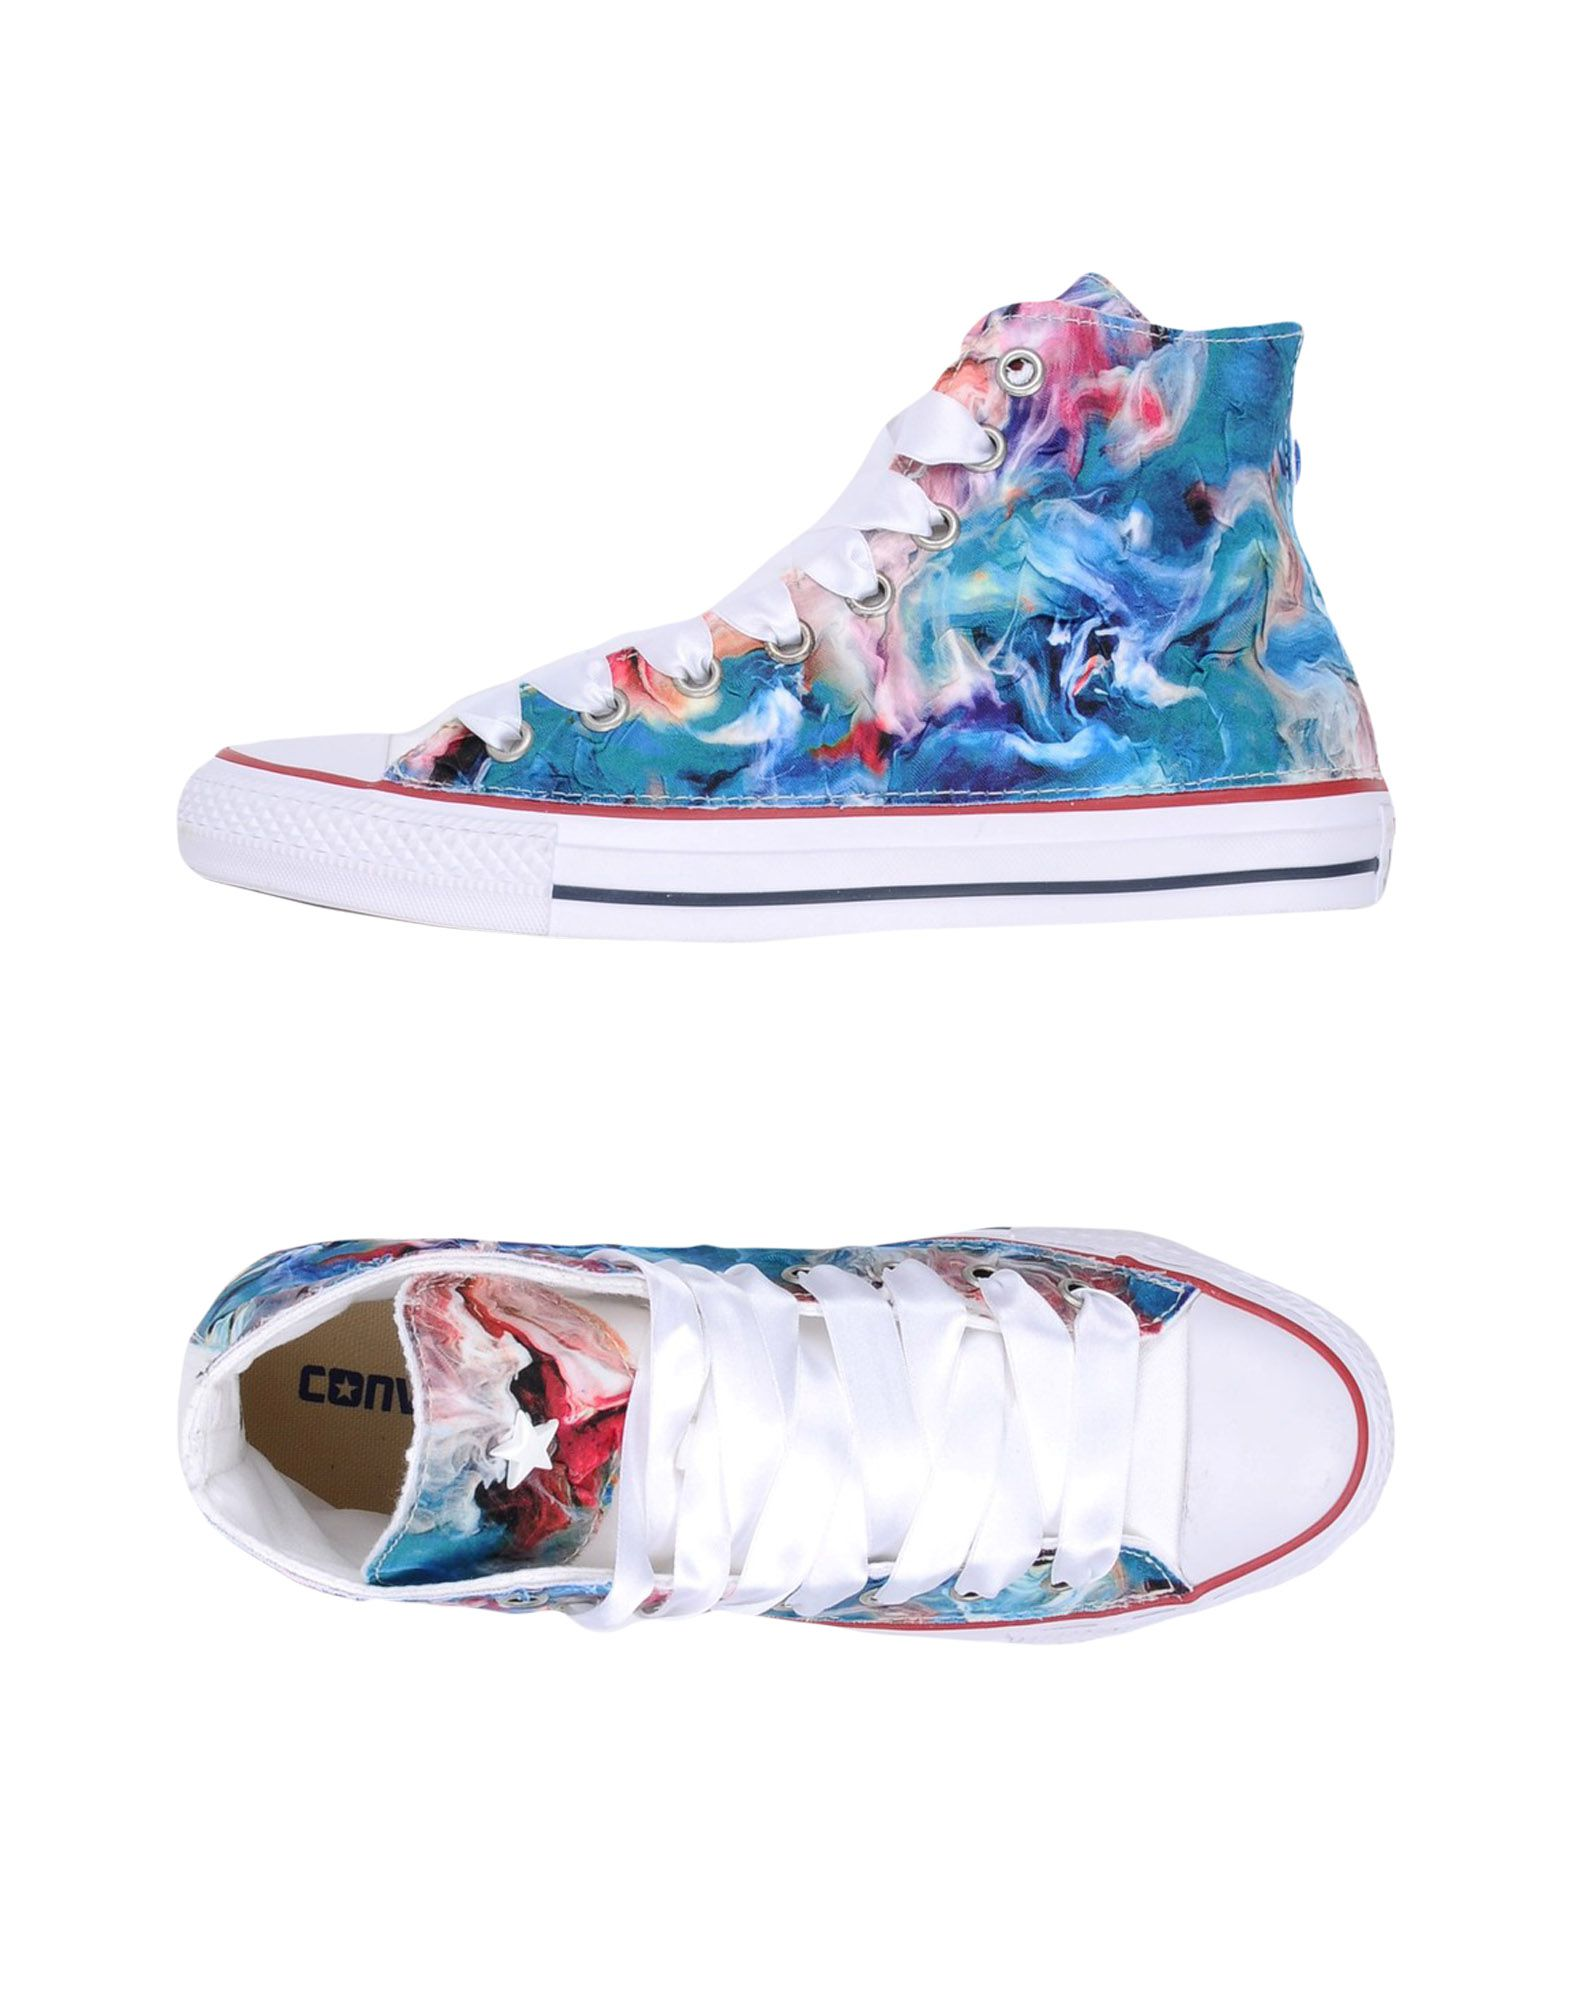 Sneakers Converse Limited Edition Ctas Hi Canvas/Textile Ltd - Donna - 11273156KH